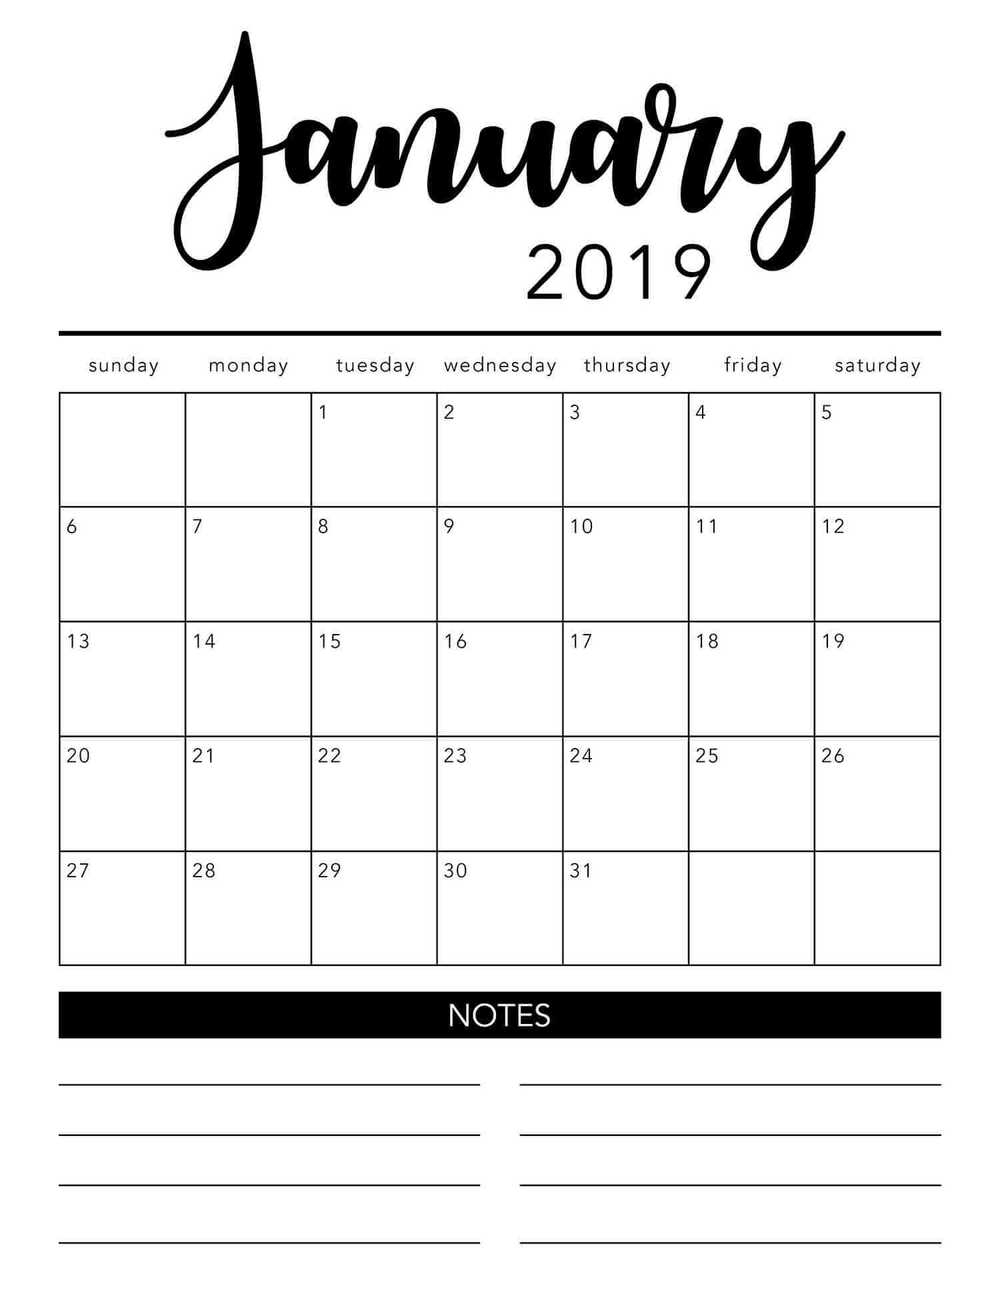 Free 2019 Printable Calendar Template (2 Colors!) - I Heart Naptime with Blank Printable Calendar By Month With Notes